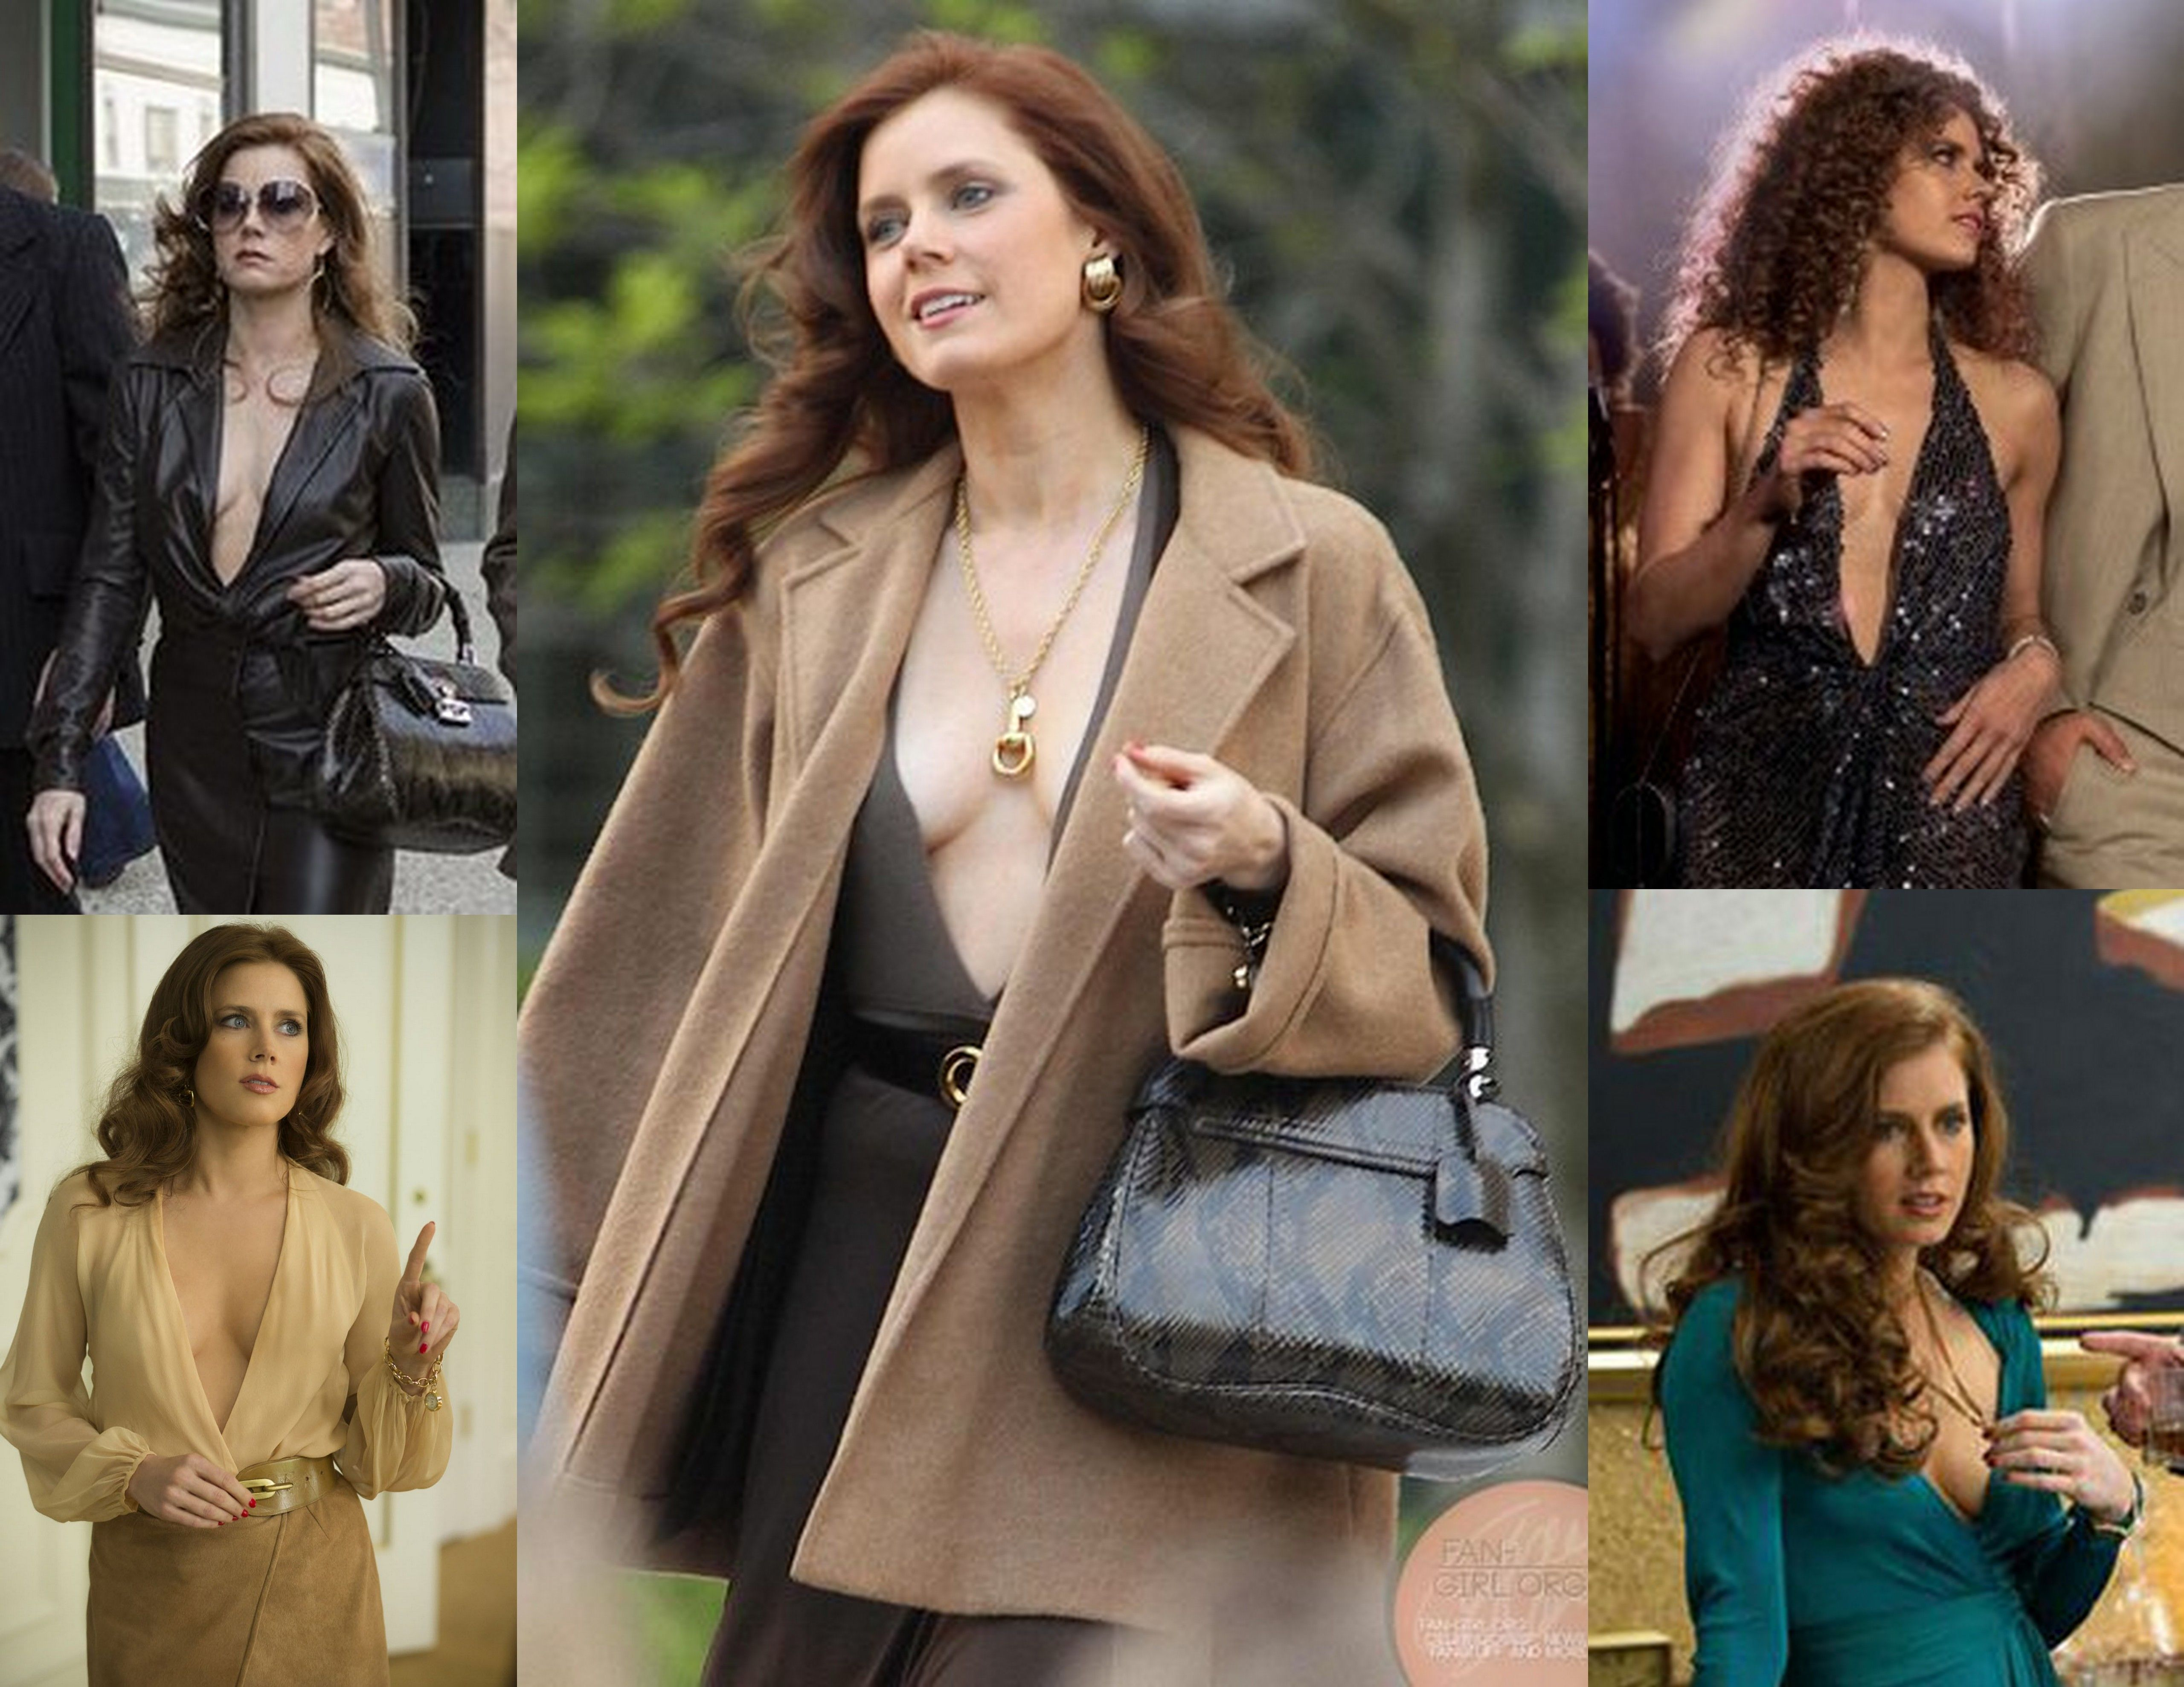 Jackie O Hustler Pics Cheap amy adams' outfits in american hustle needed to be a separate